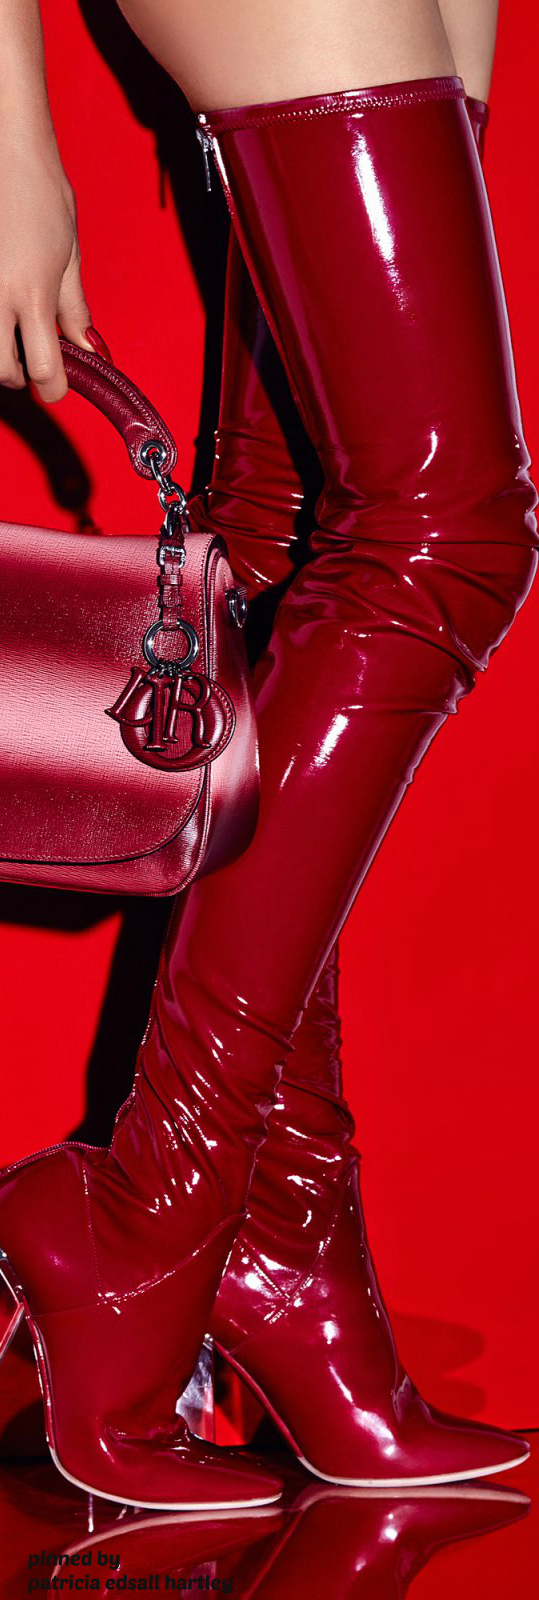 43b93a03e80 CHRISTIAN DIOR RED! | CHRISTIAN DIOR | Red high heel boots, Red ...